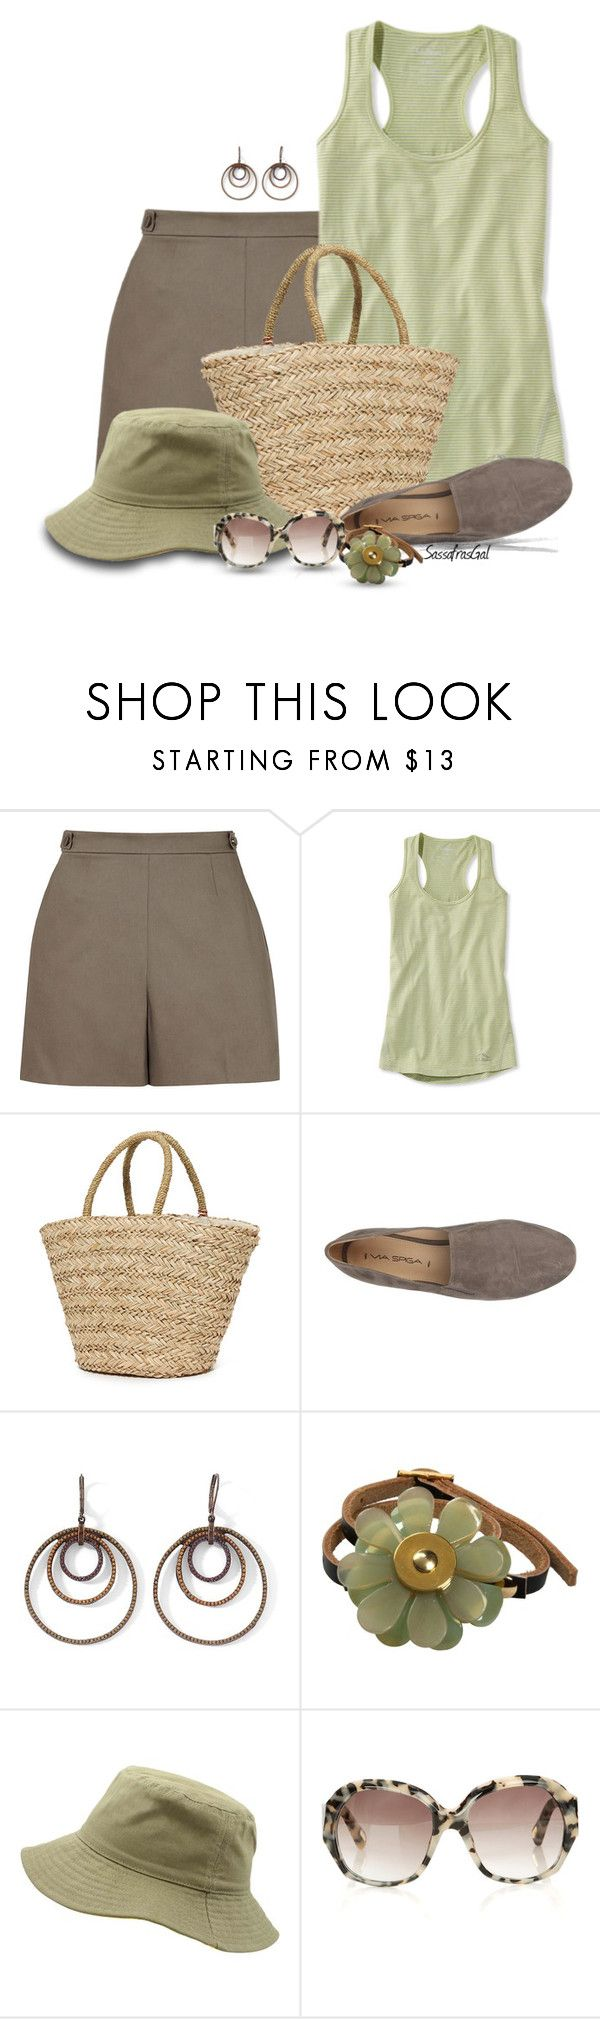 """""""Summer Bag"""" by sassafrasgal ❤ liked on Polyvore featuring Sundry, Via Spiga, MNG by Mango, Marni and Marc Jacobs"""